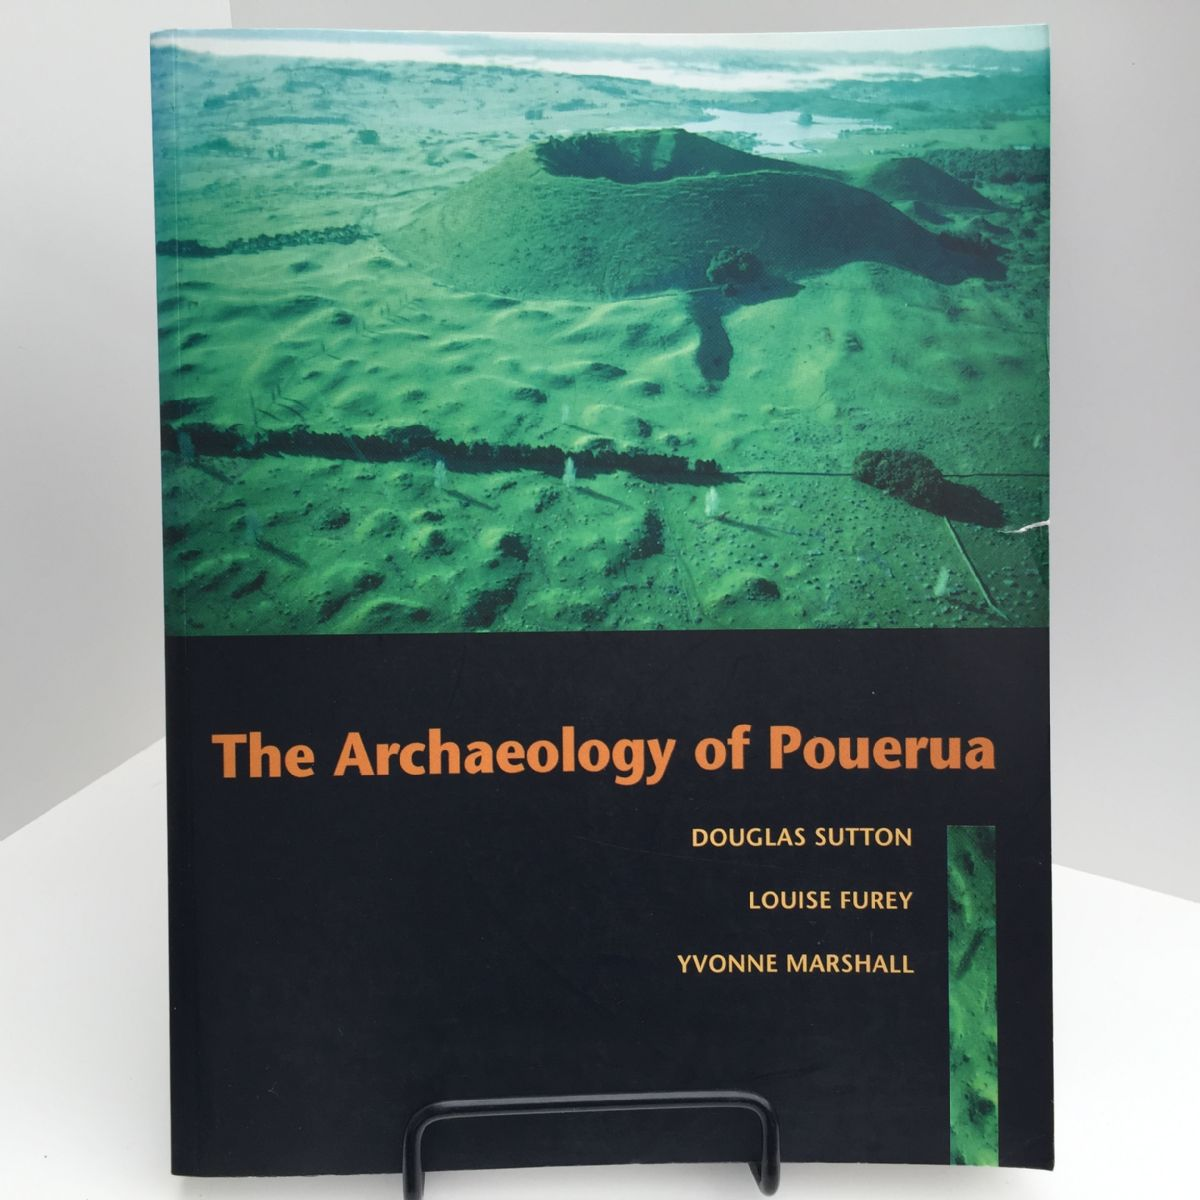 The Archaeology of Pouerua